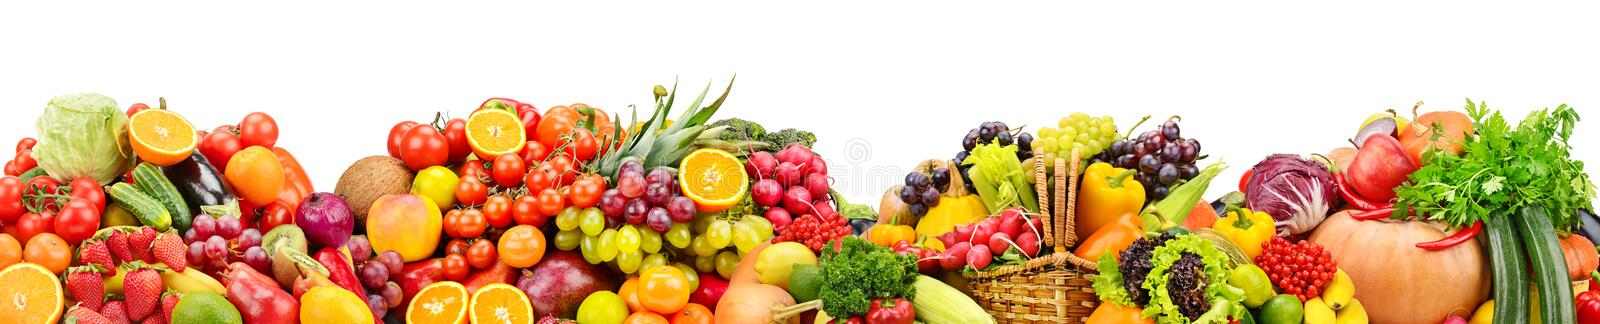 Fresh fruits and vegetables useful for health isolated on white. Background royalty free stock image